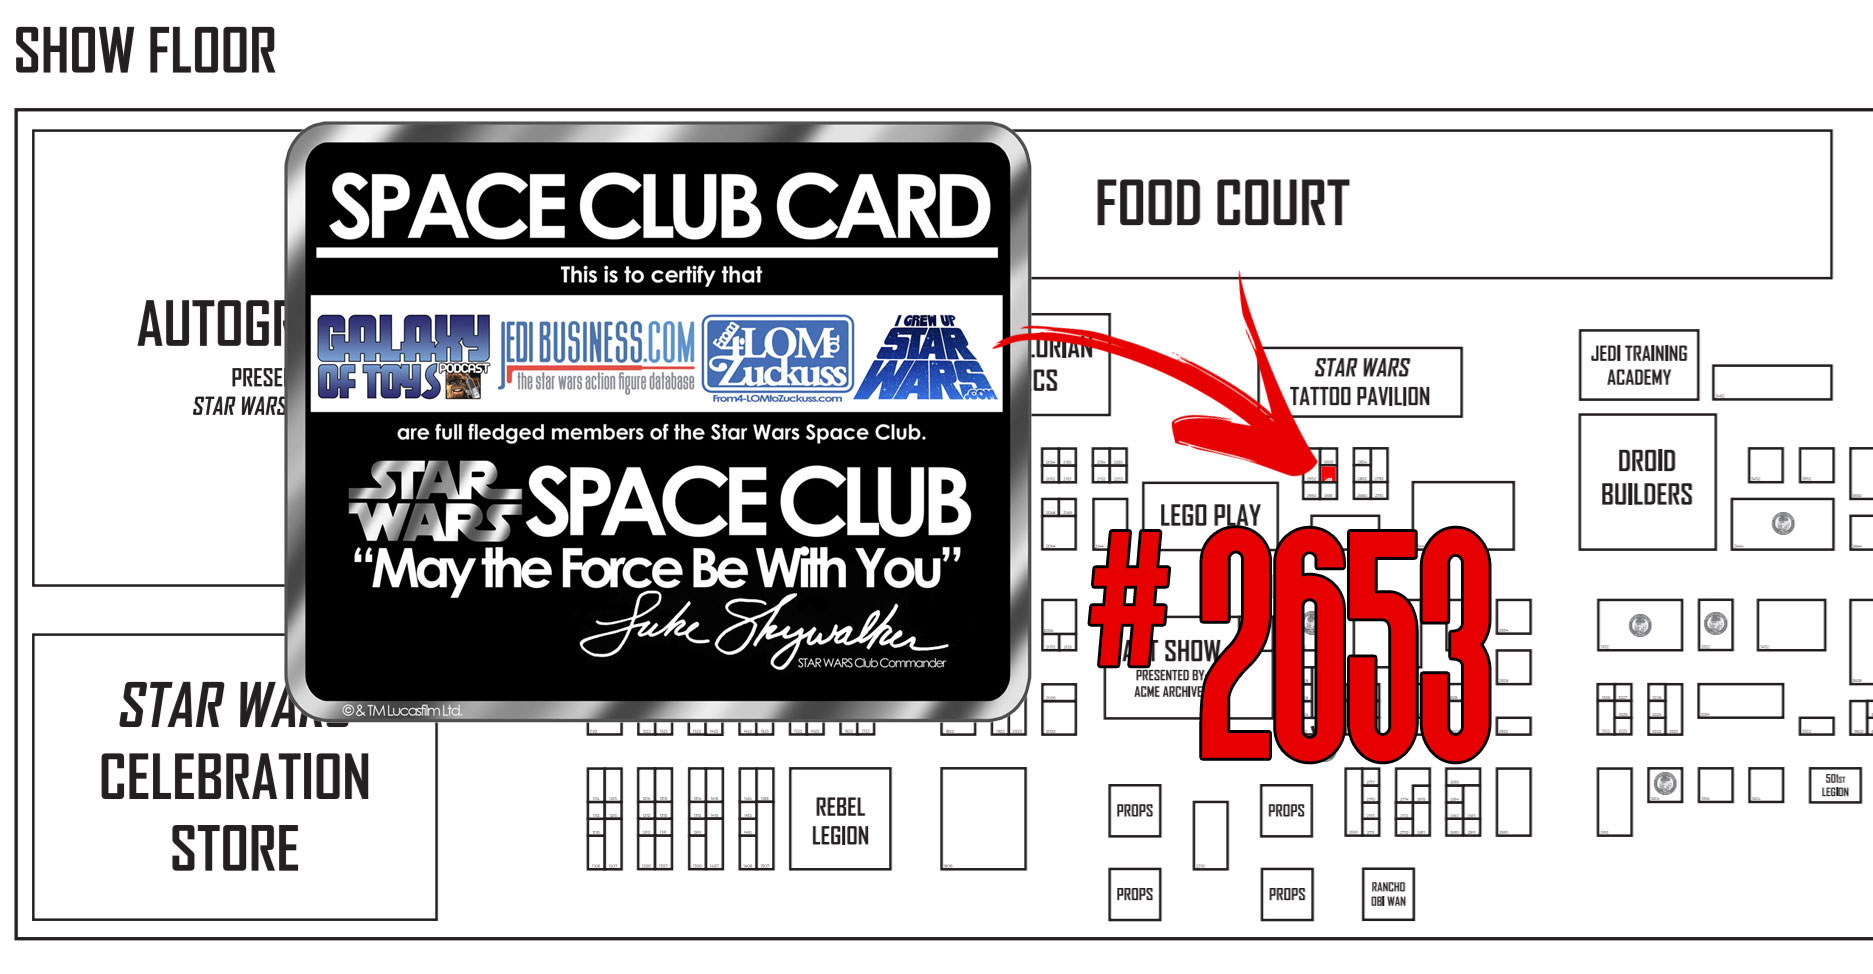 Star Wars Space Club location for Star Wars Celebration Orlando